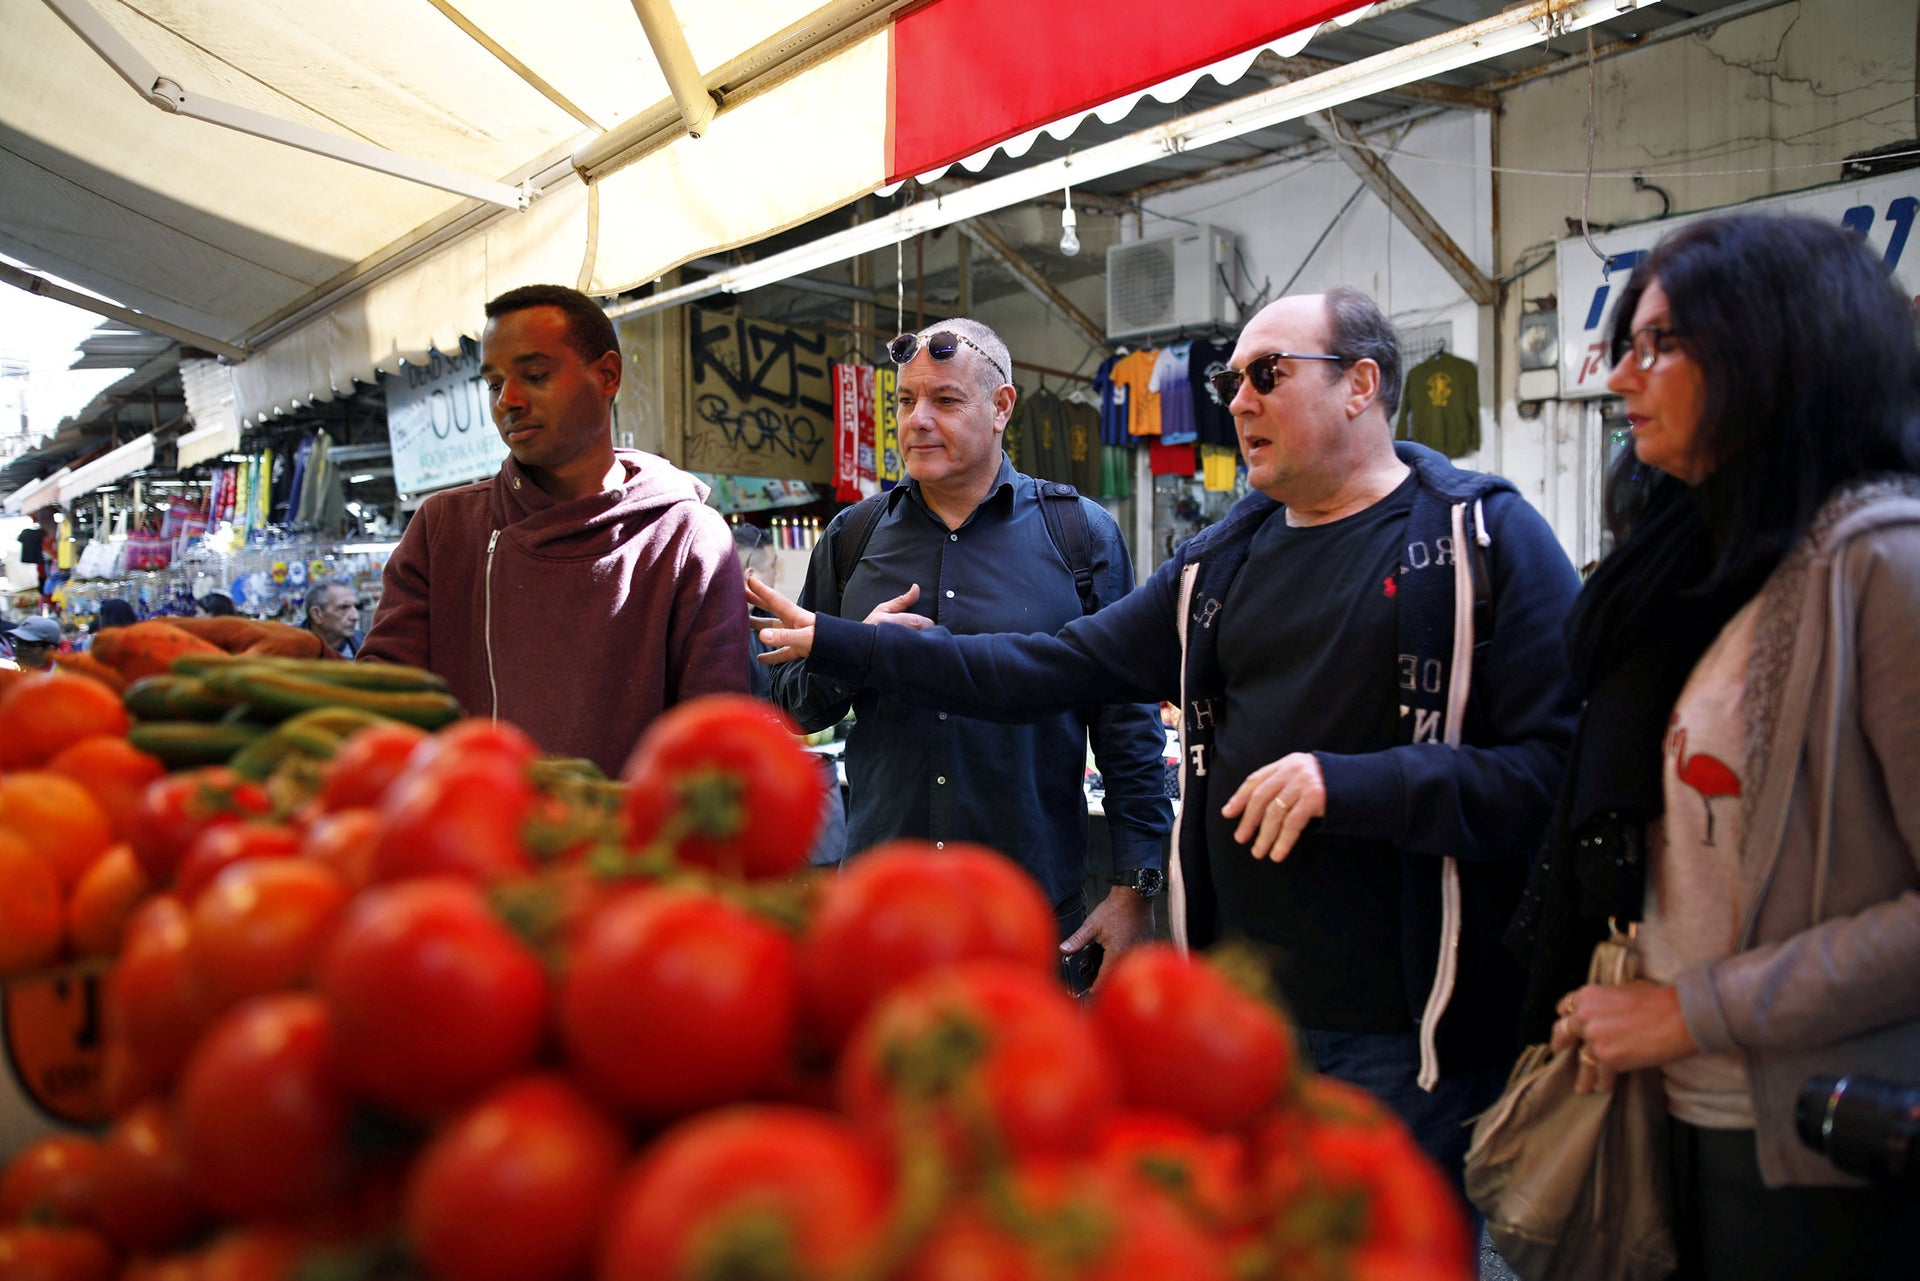 At the Carmel market in Tel Aviv, locals and market vendors participate in the special training session.